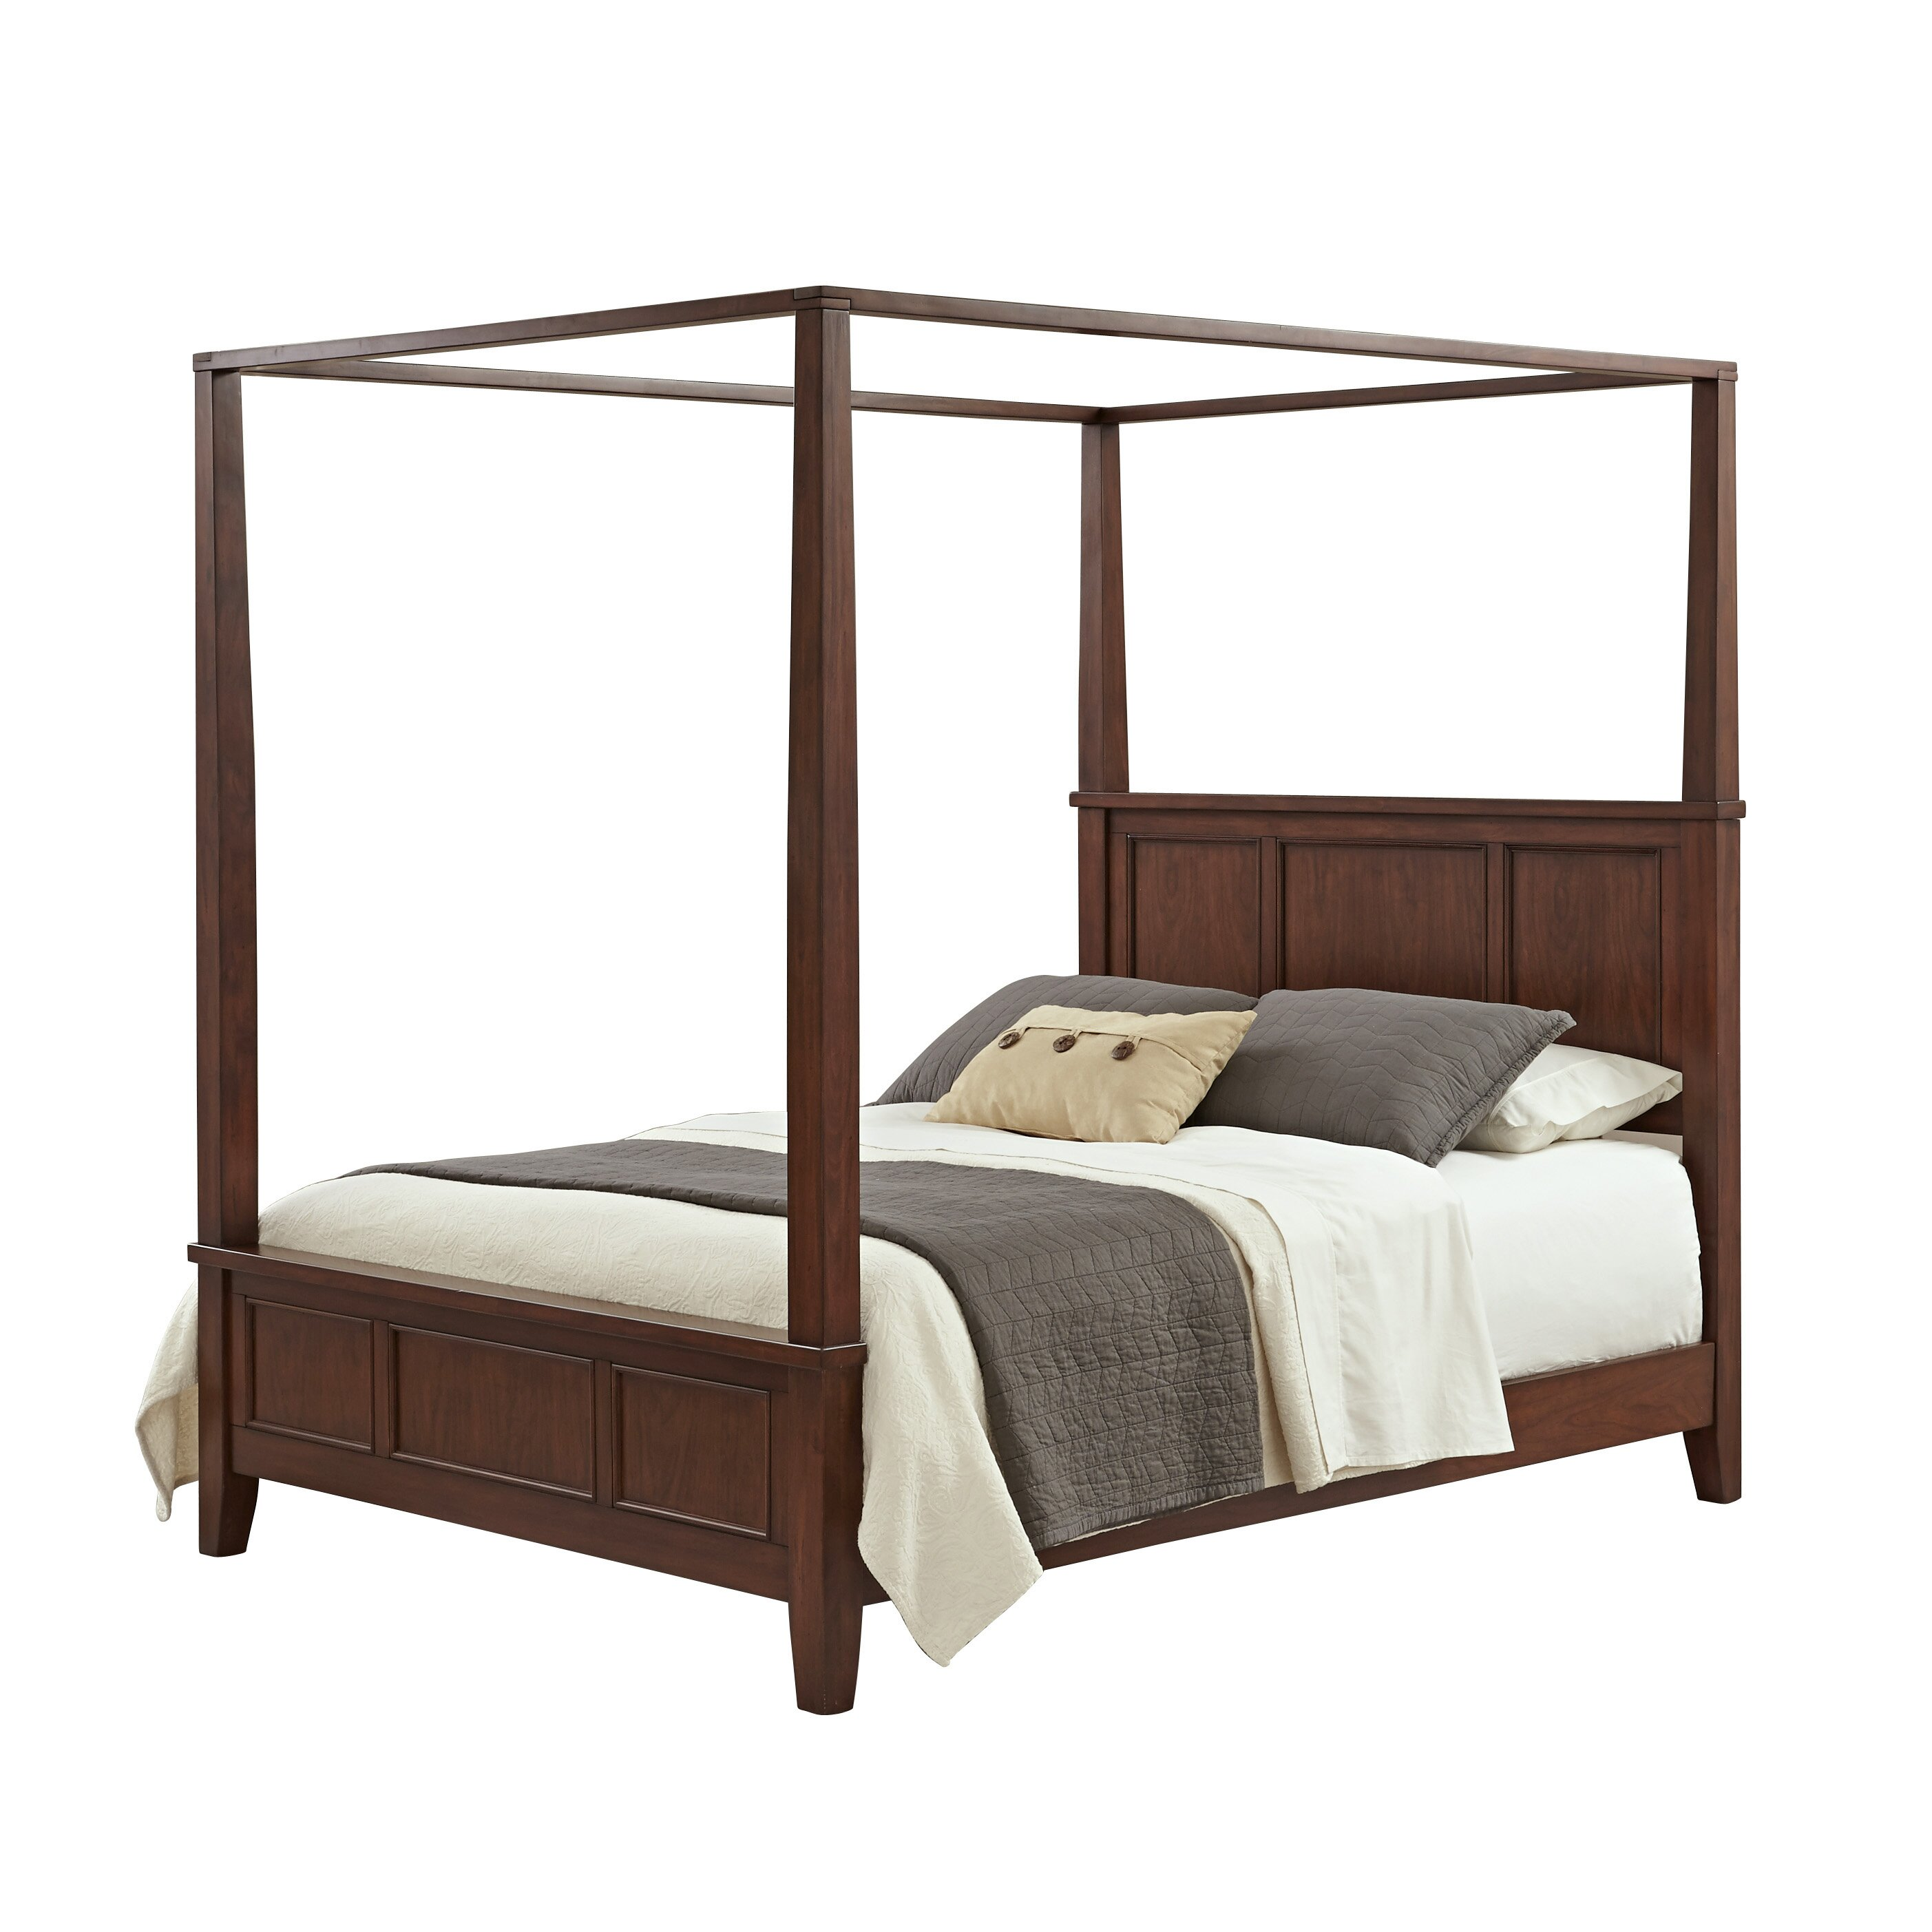 Home styles chesapeake canopy bed reviews wayfair - Beds styles pictures ...